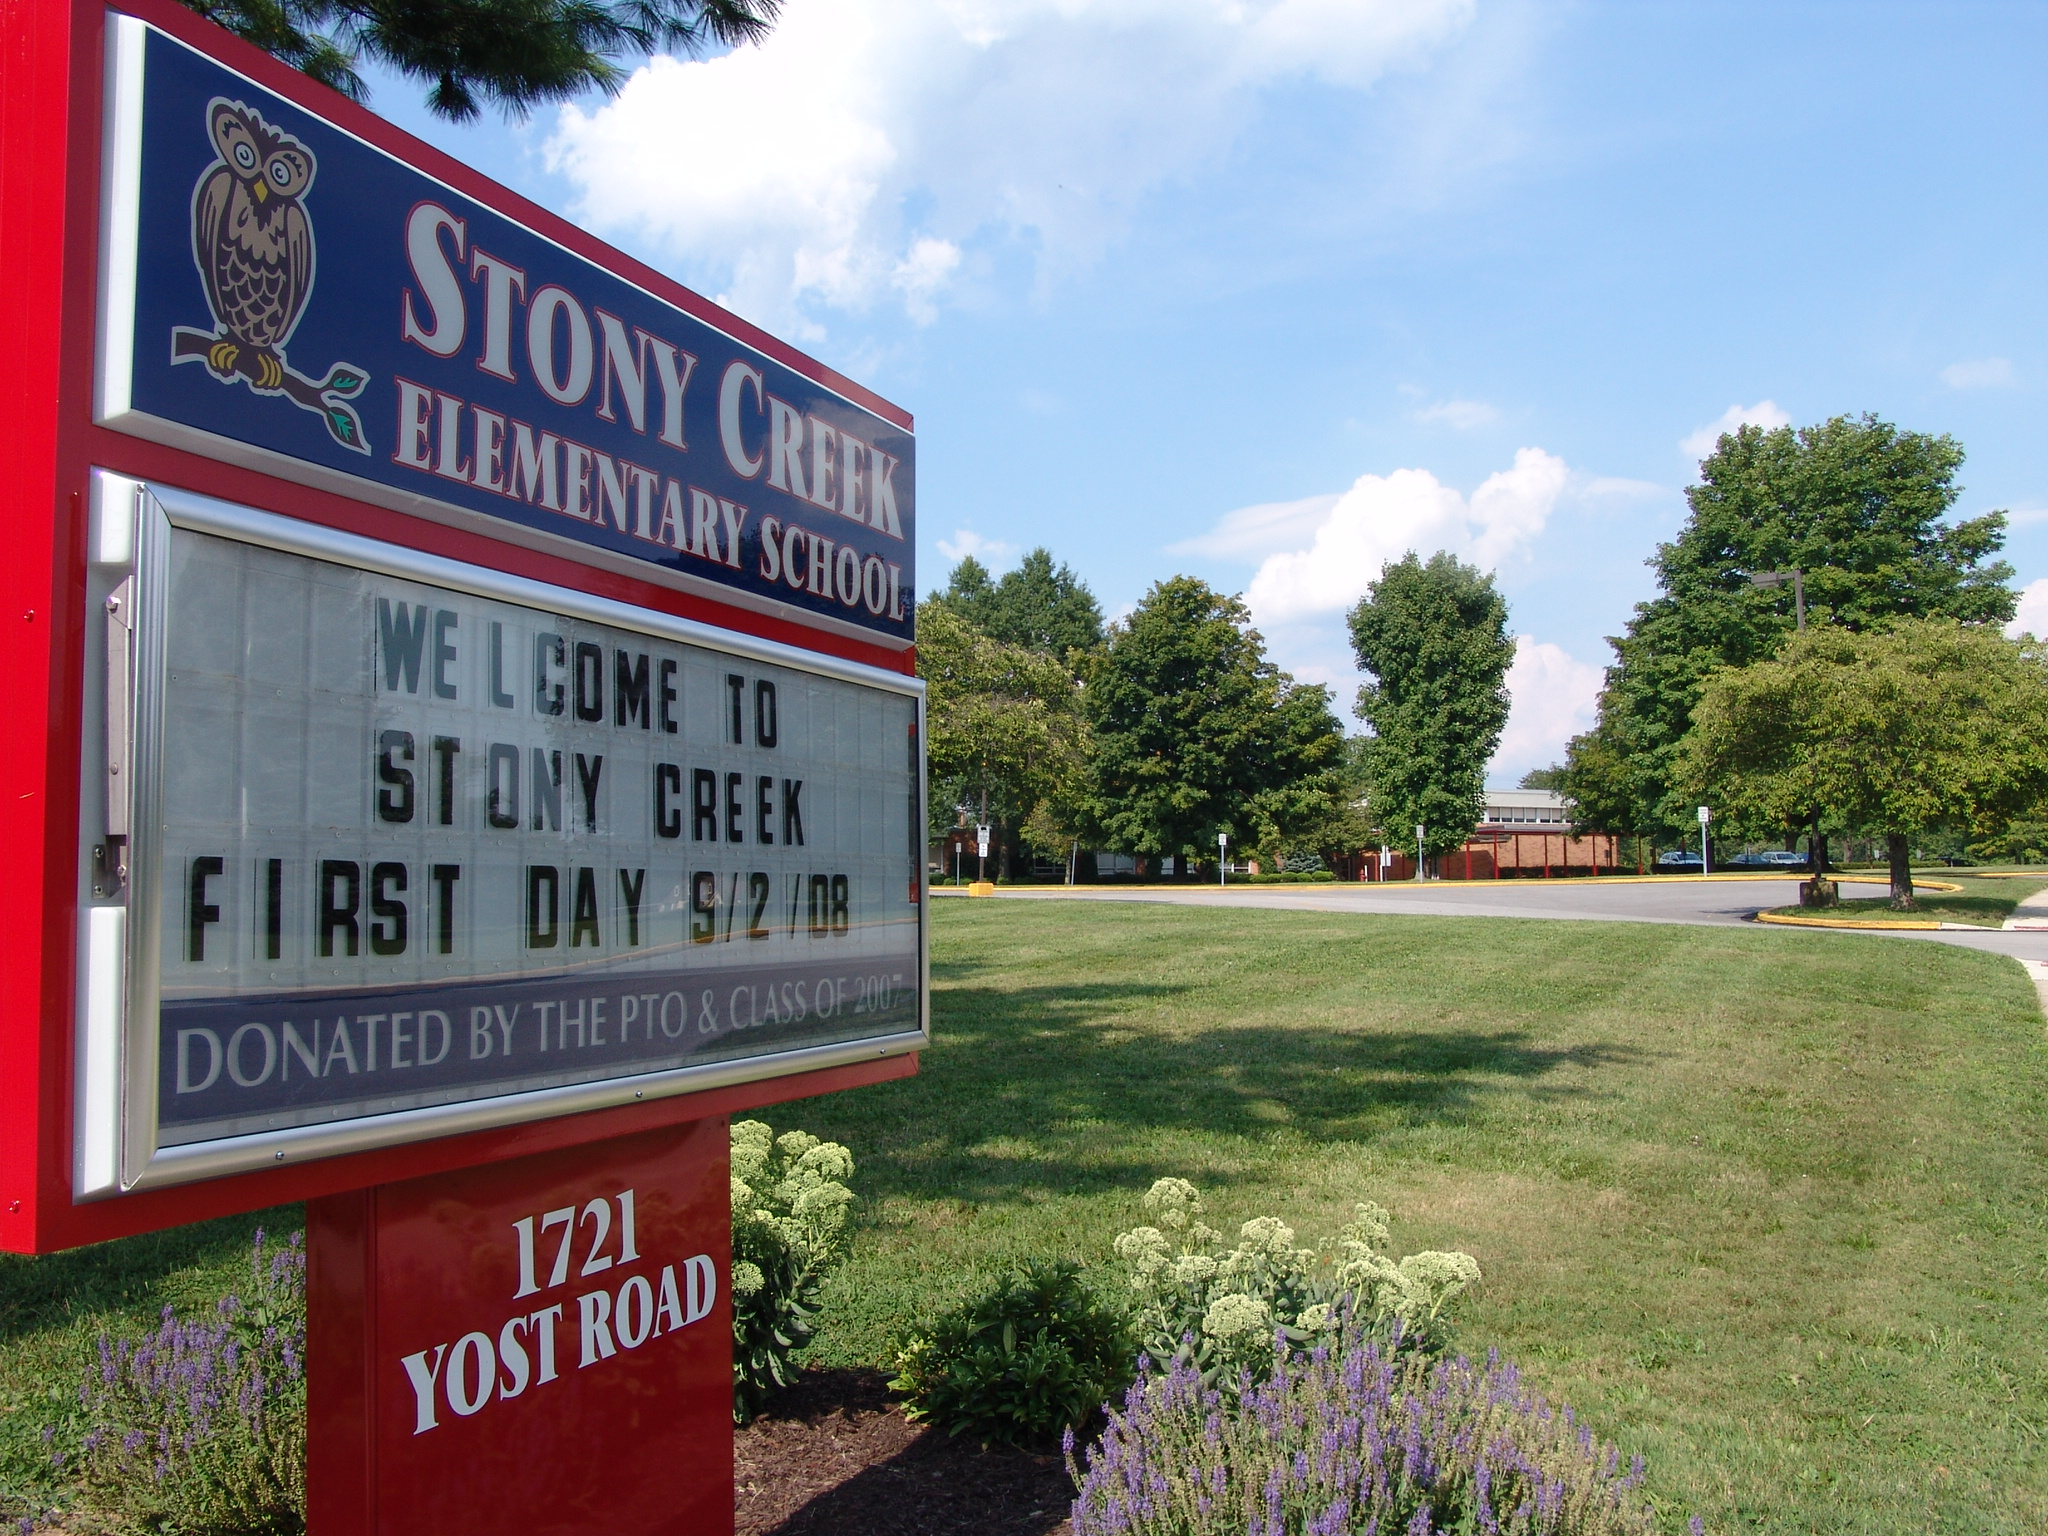 Stony Creek Elementary